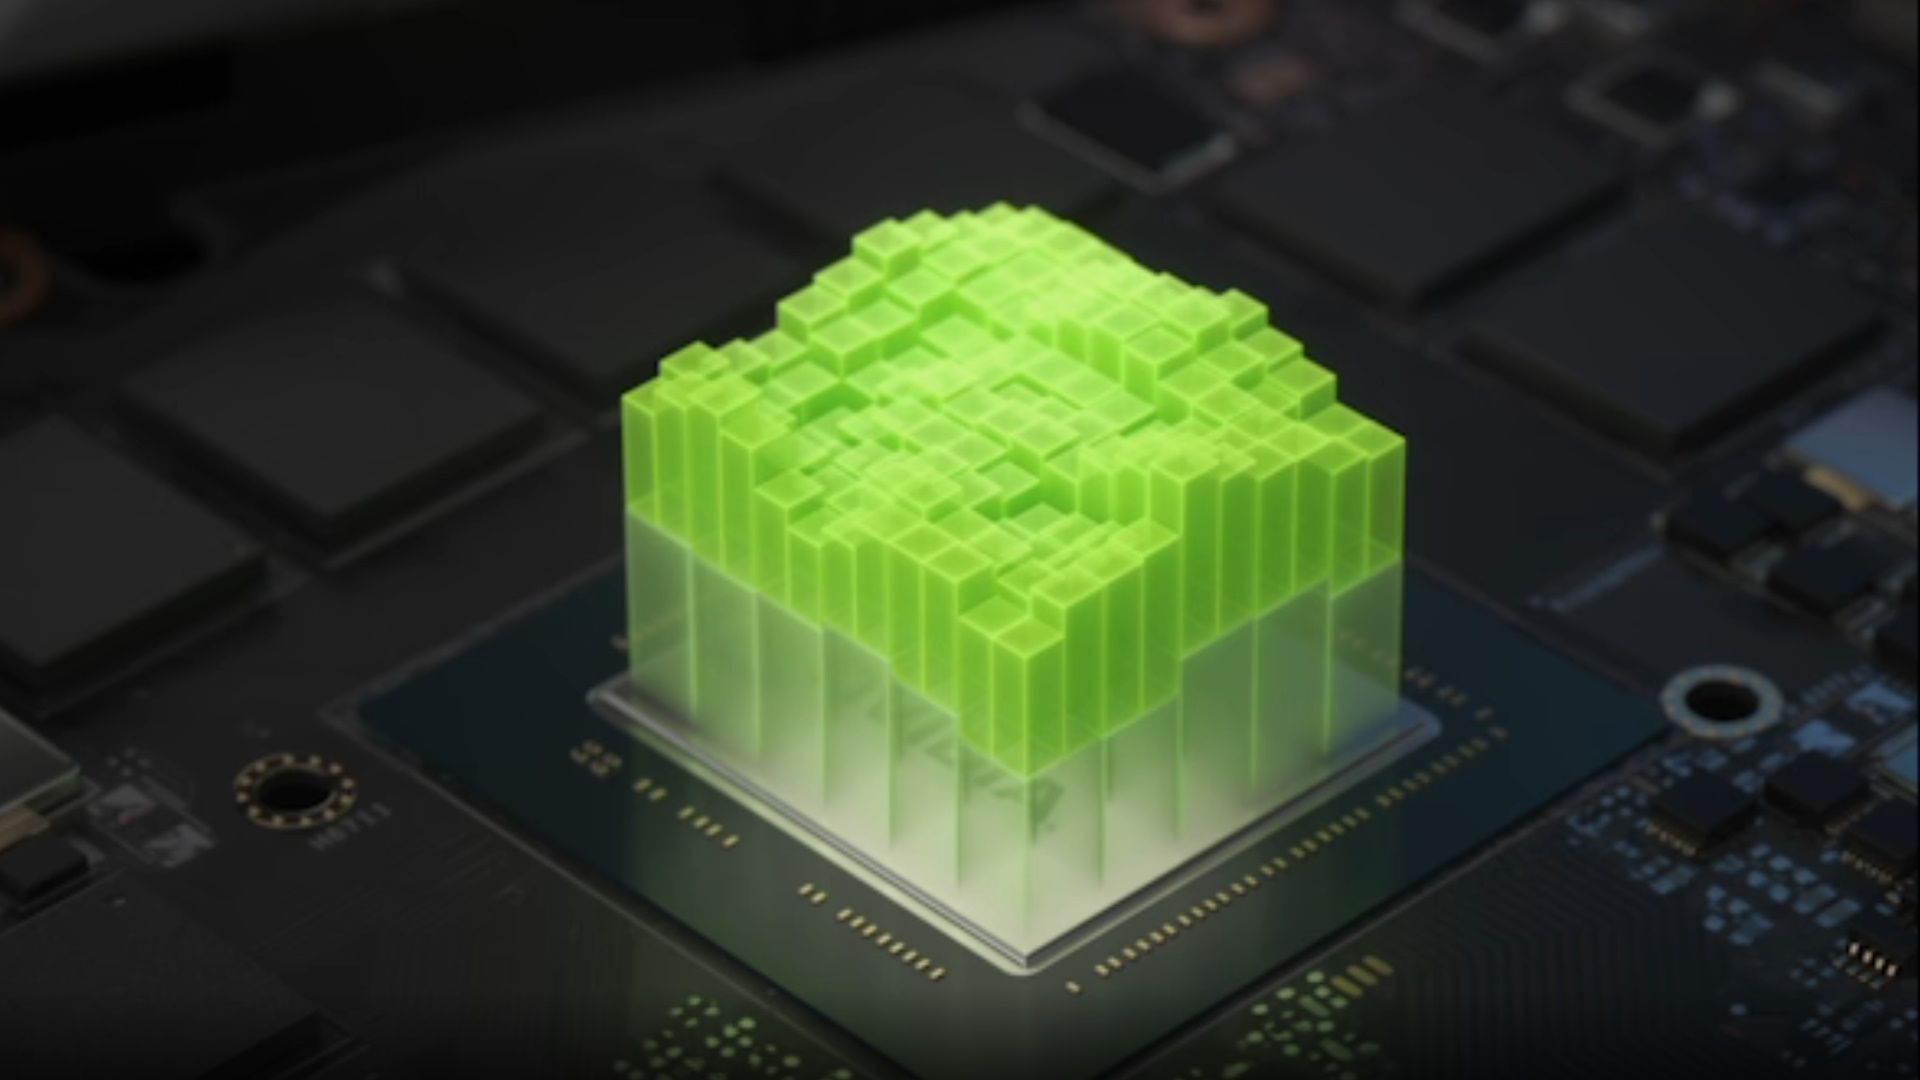 Nvidia RTX 3050 and Intel Tiger Lake details leak on Geekbench